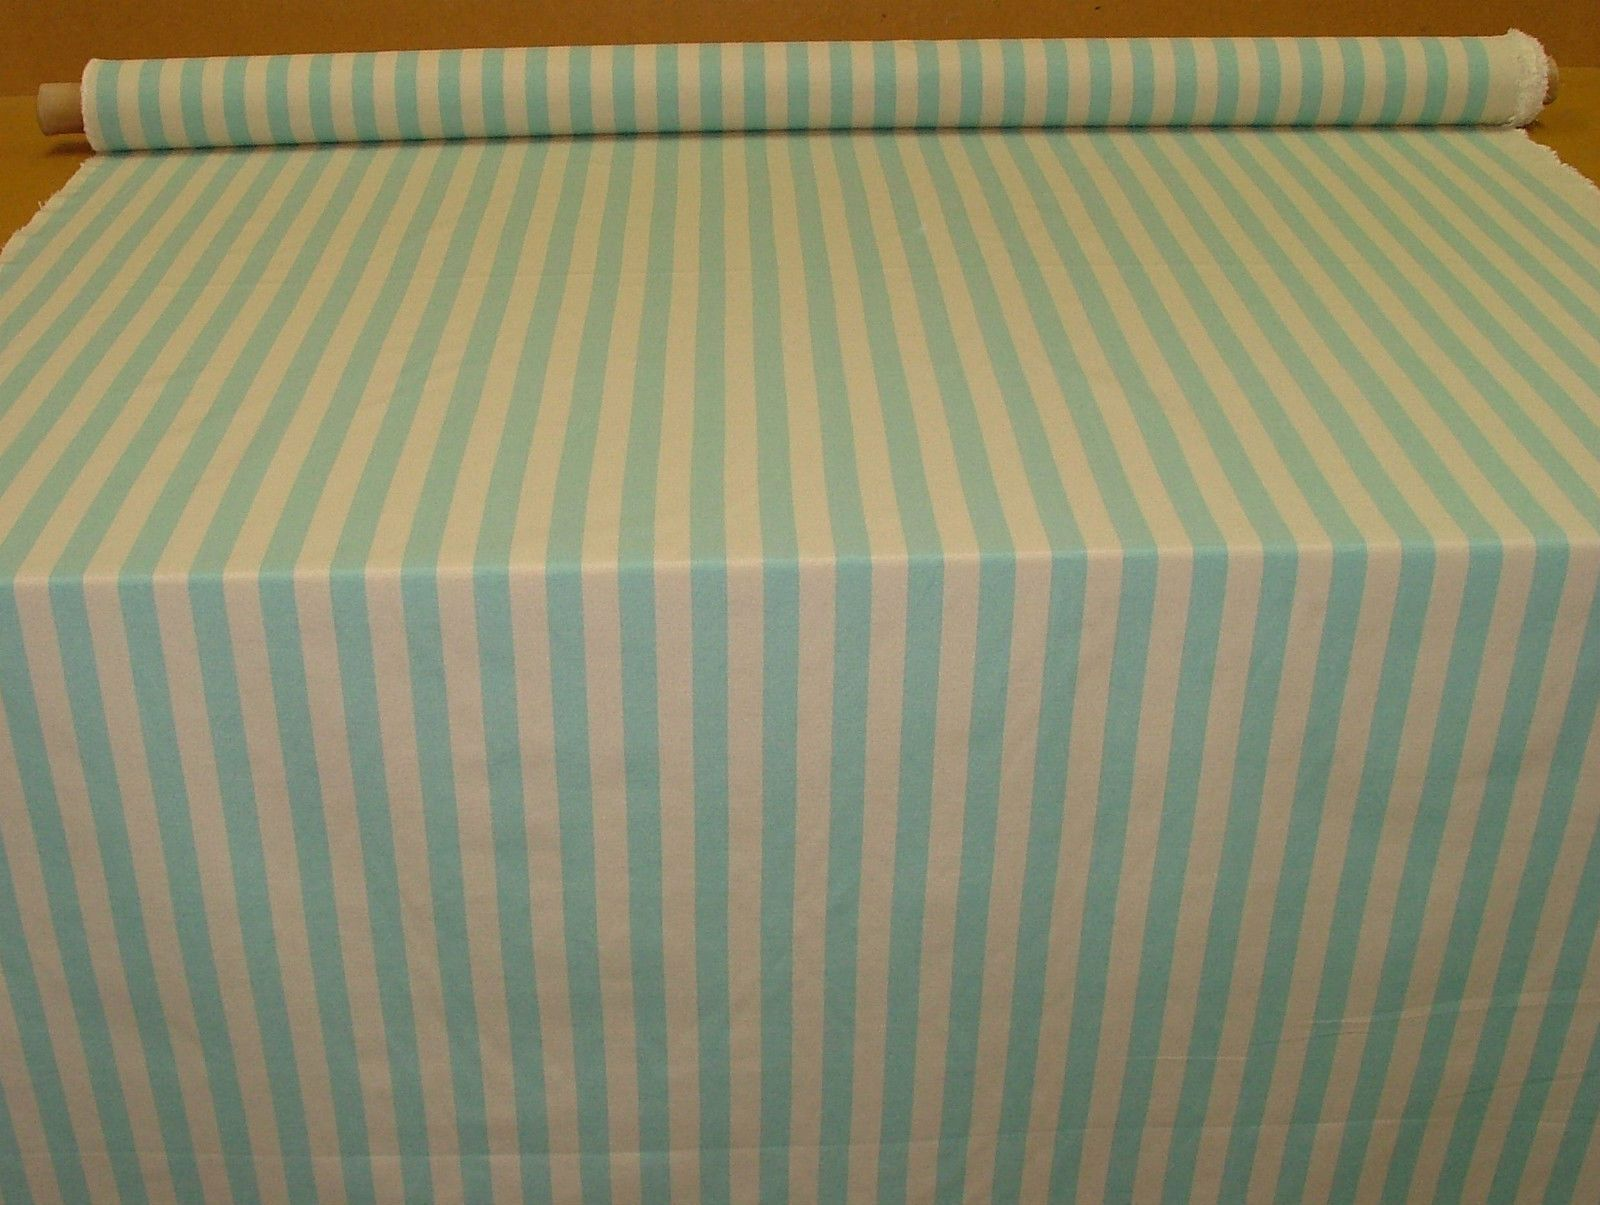 Prestigious Textiles Aqua Amp Calico Ticking Curtain